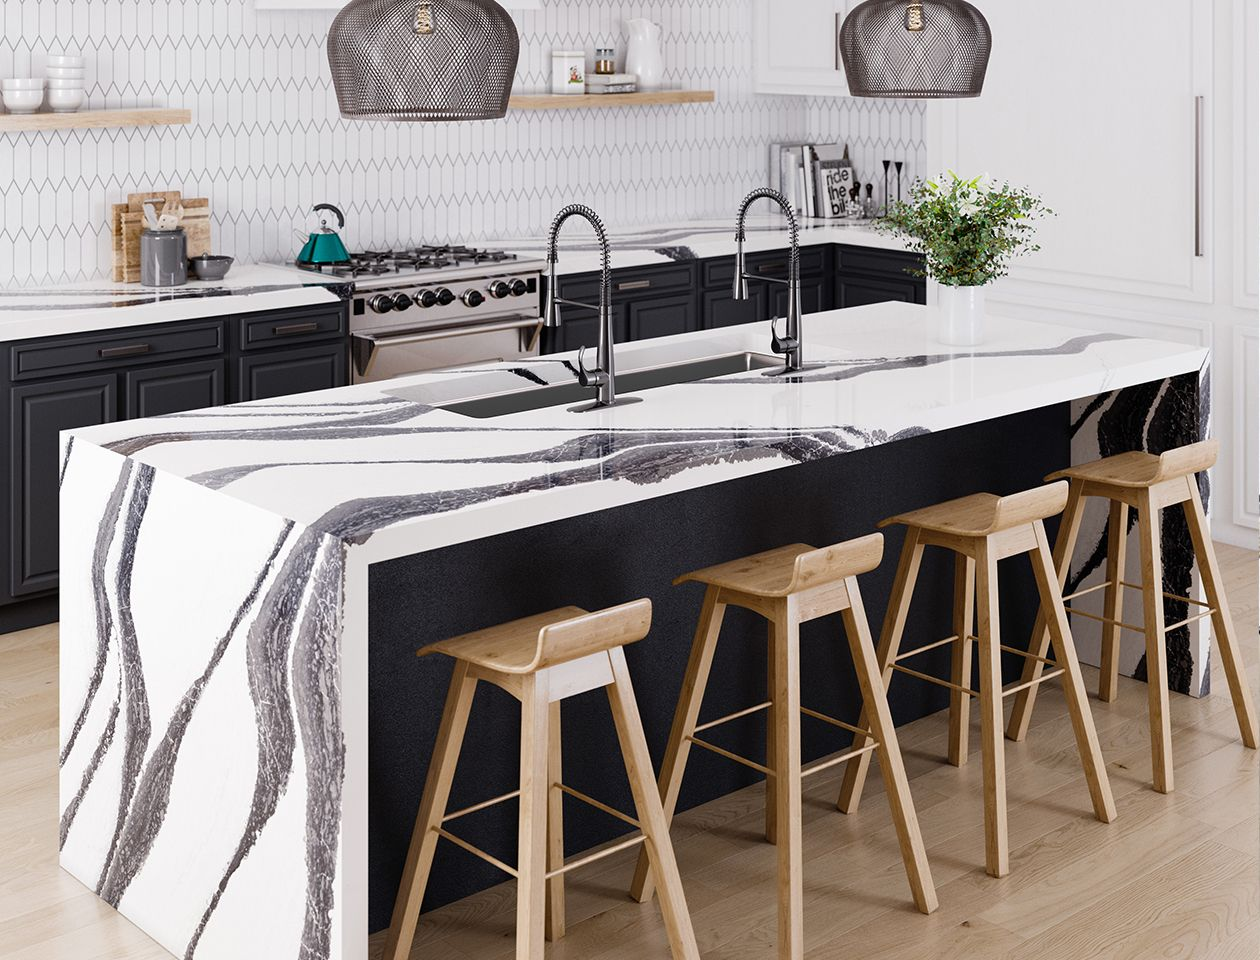 Kitchen Countertop Ideas, Cambria Surfaces black and white kitchen island